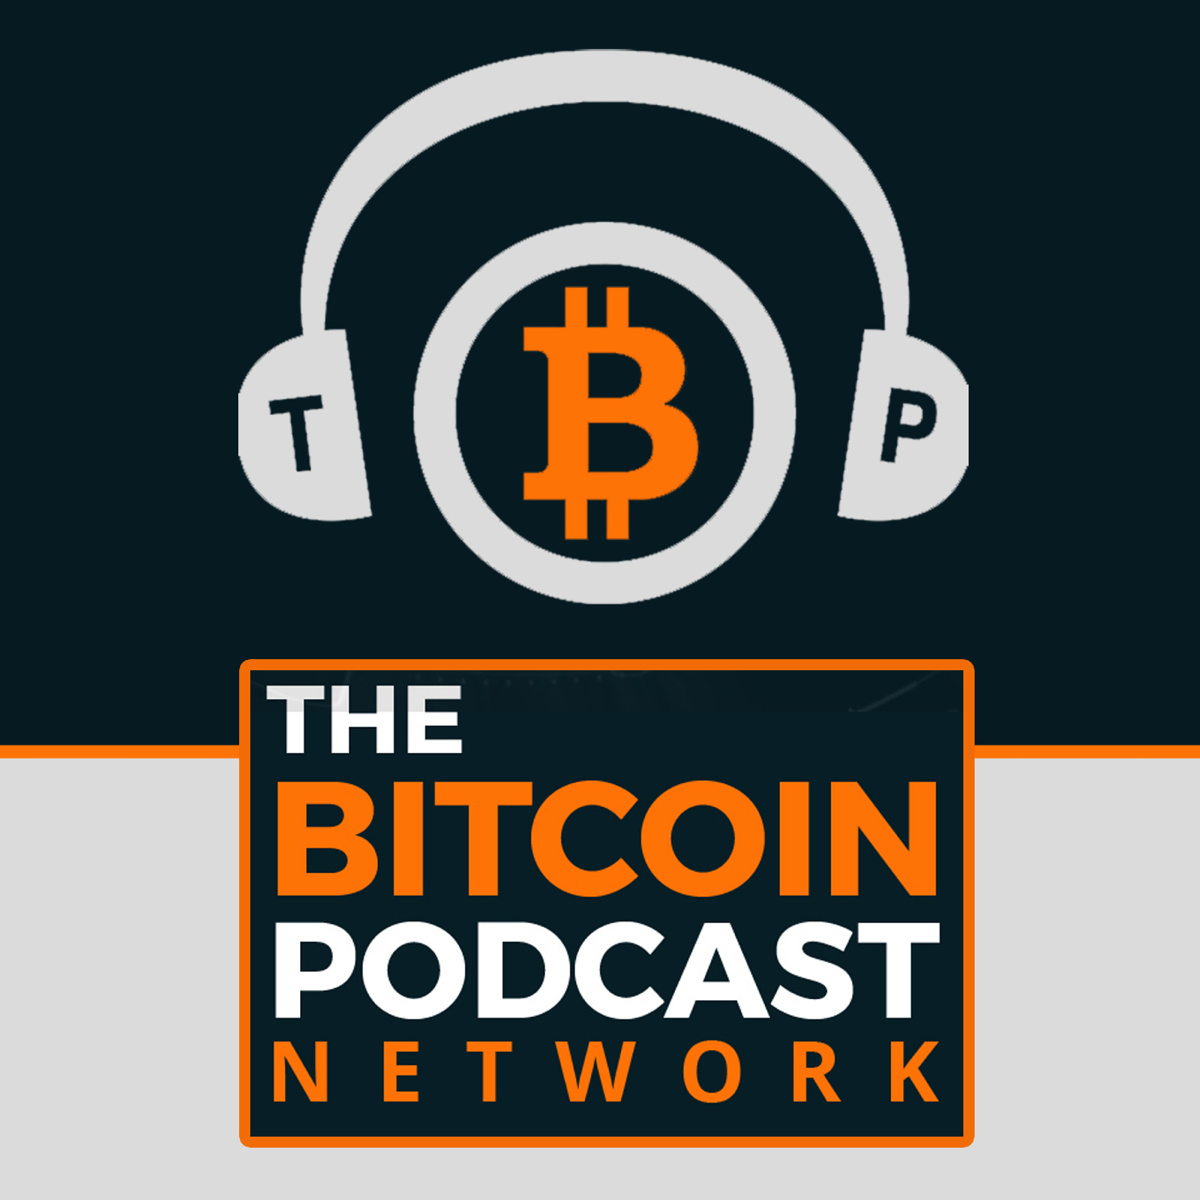 Best episodes of The Bitcoin Podcast Network | Podyssey Podcasts